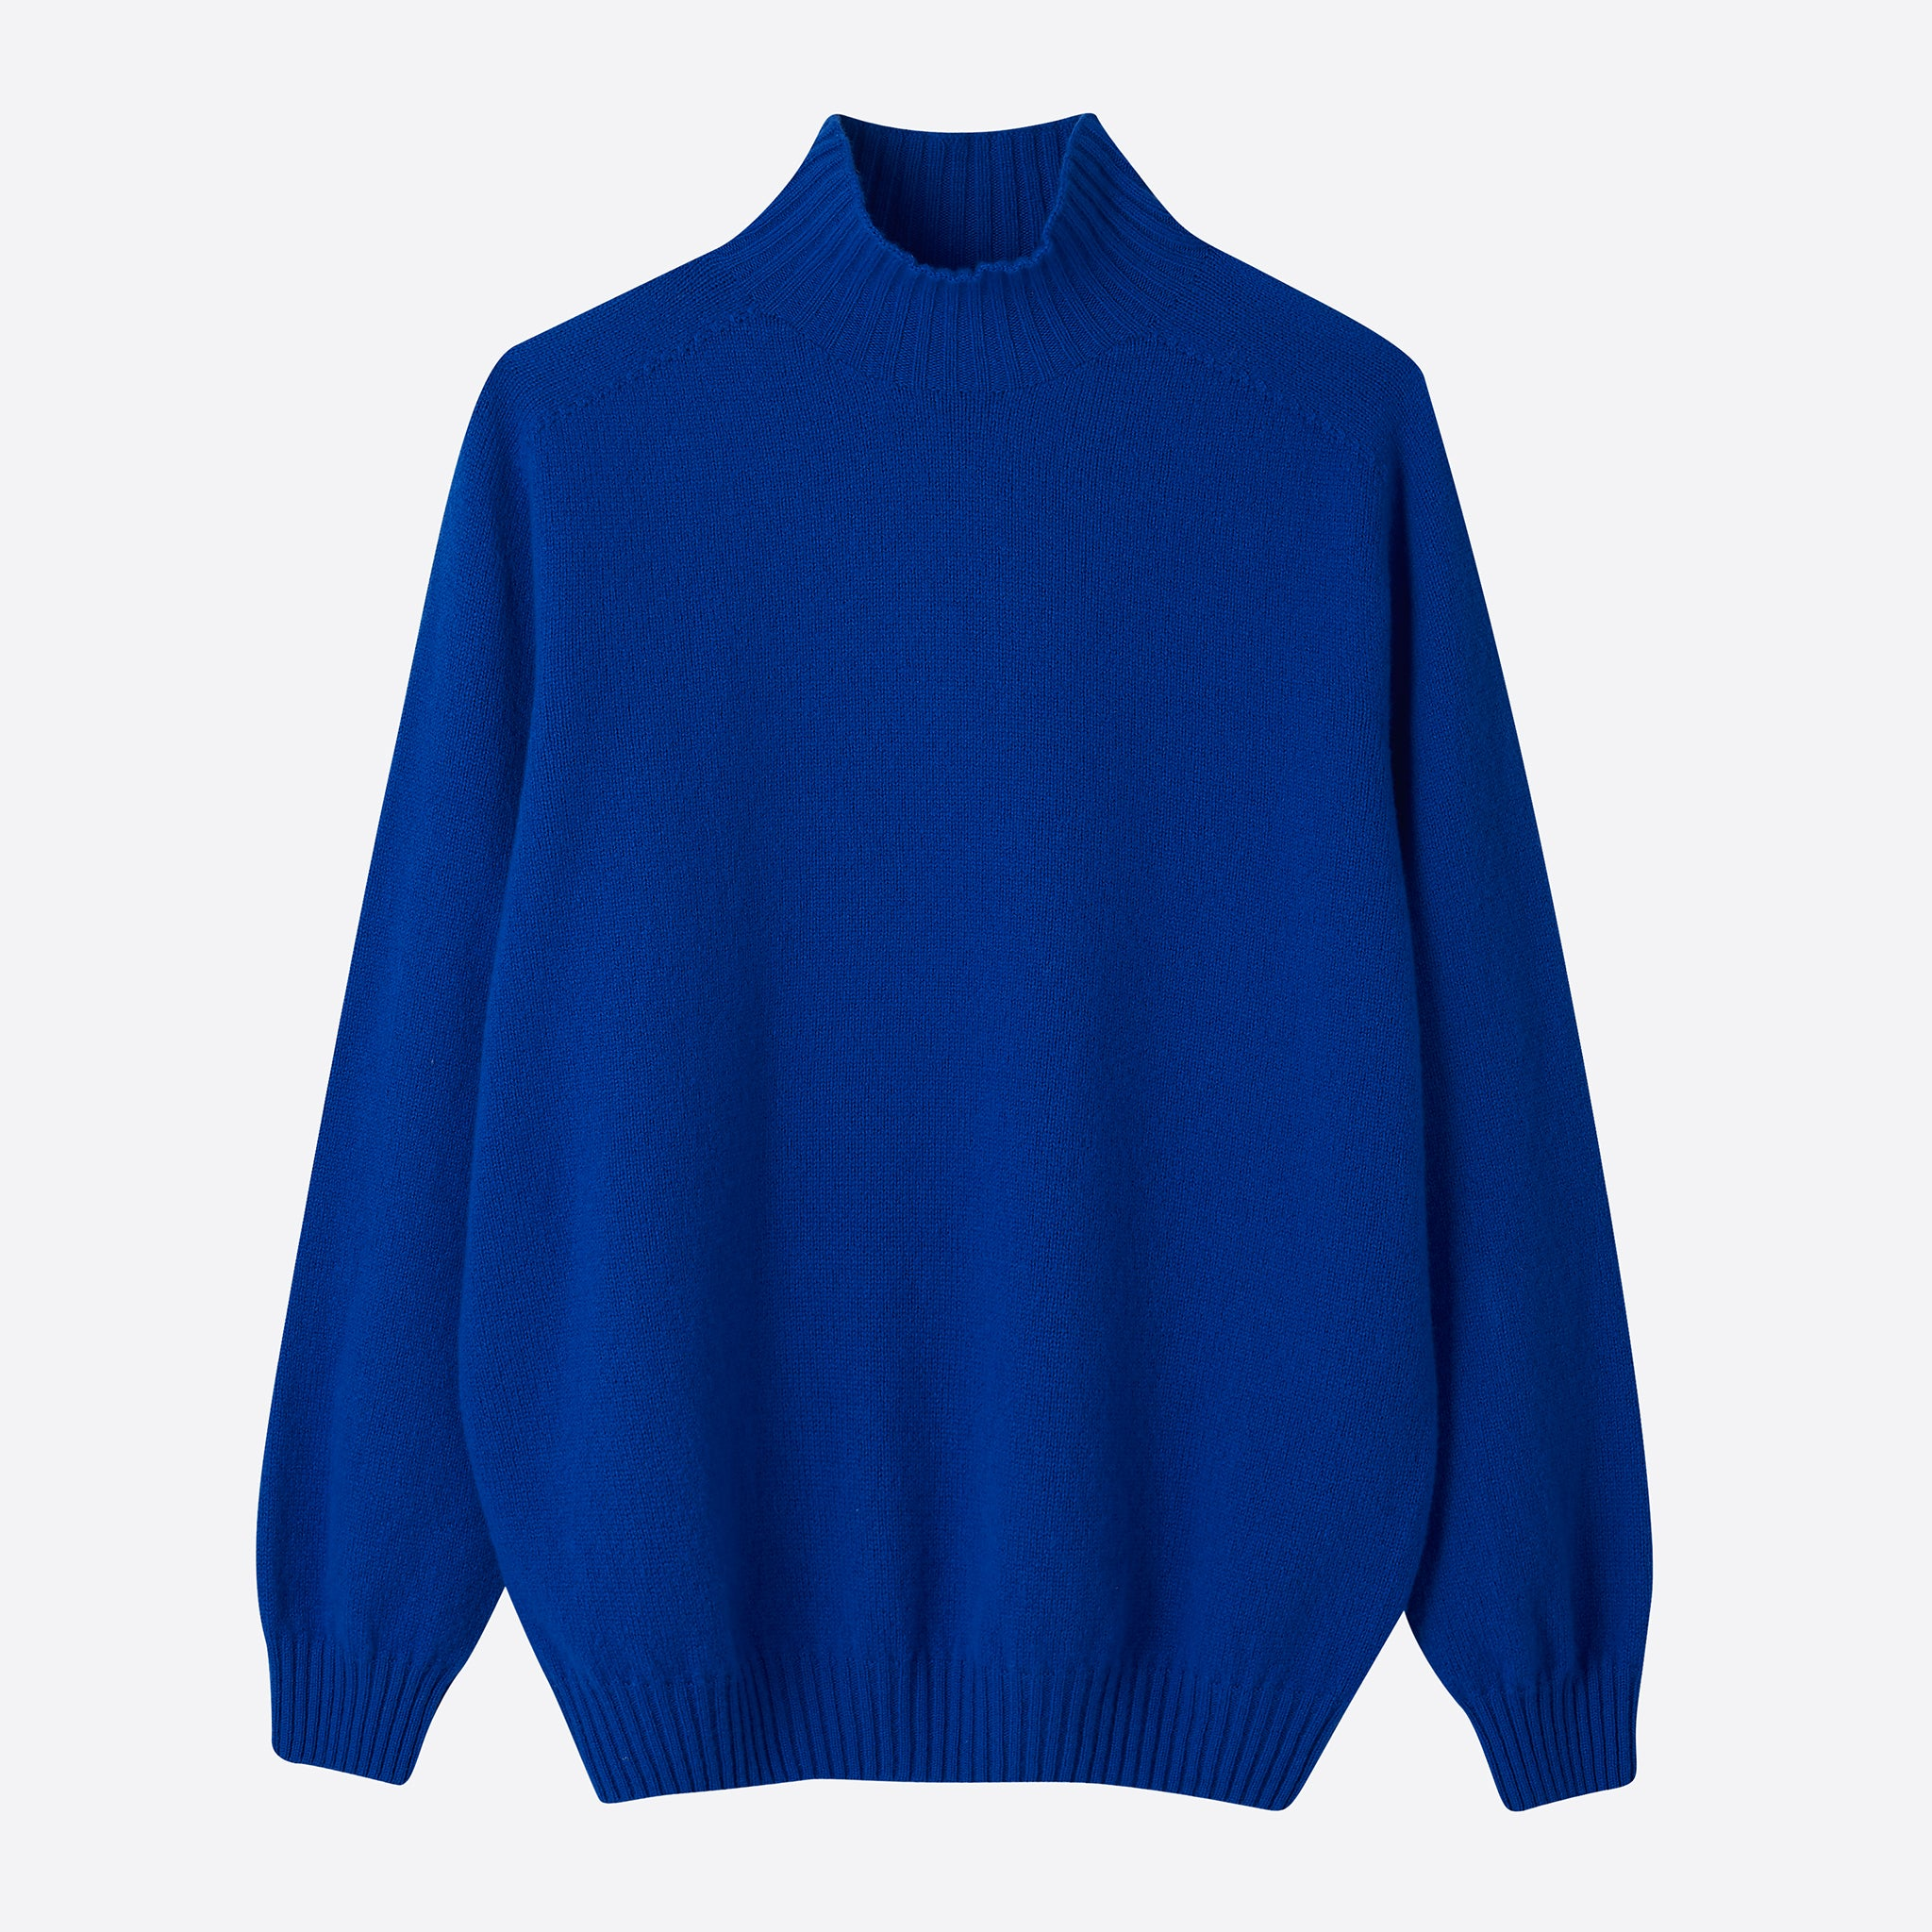 Sideline Holly Jumper in Royal Blue